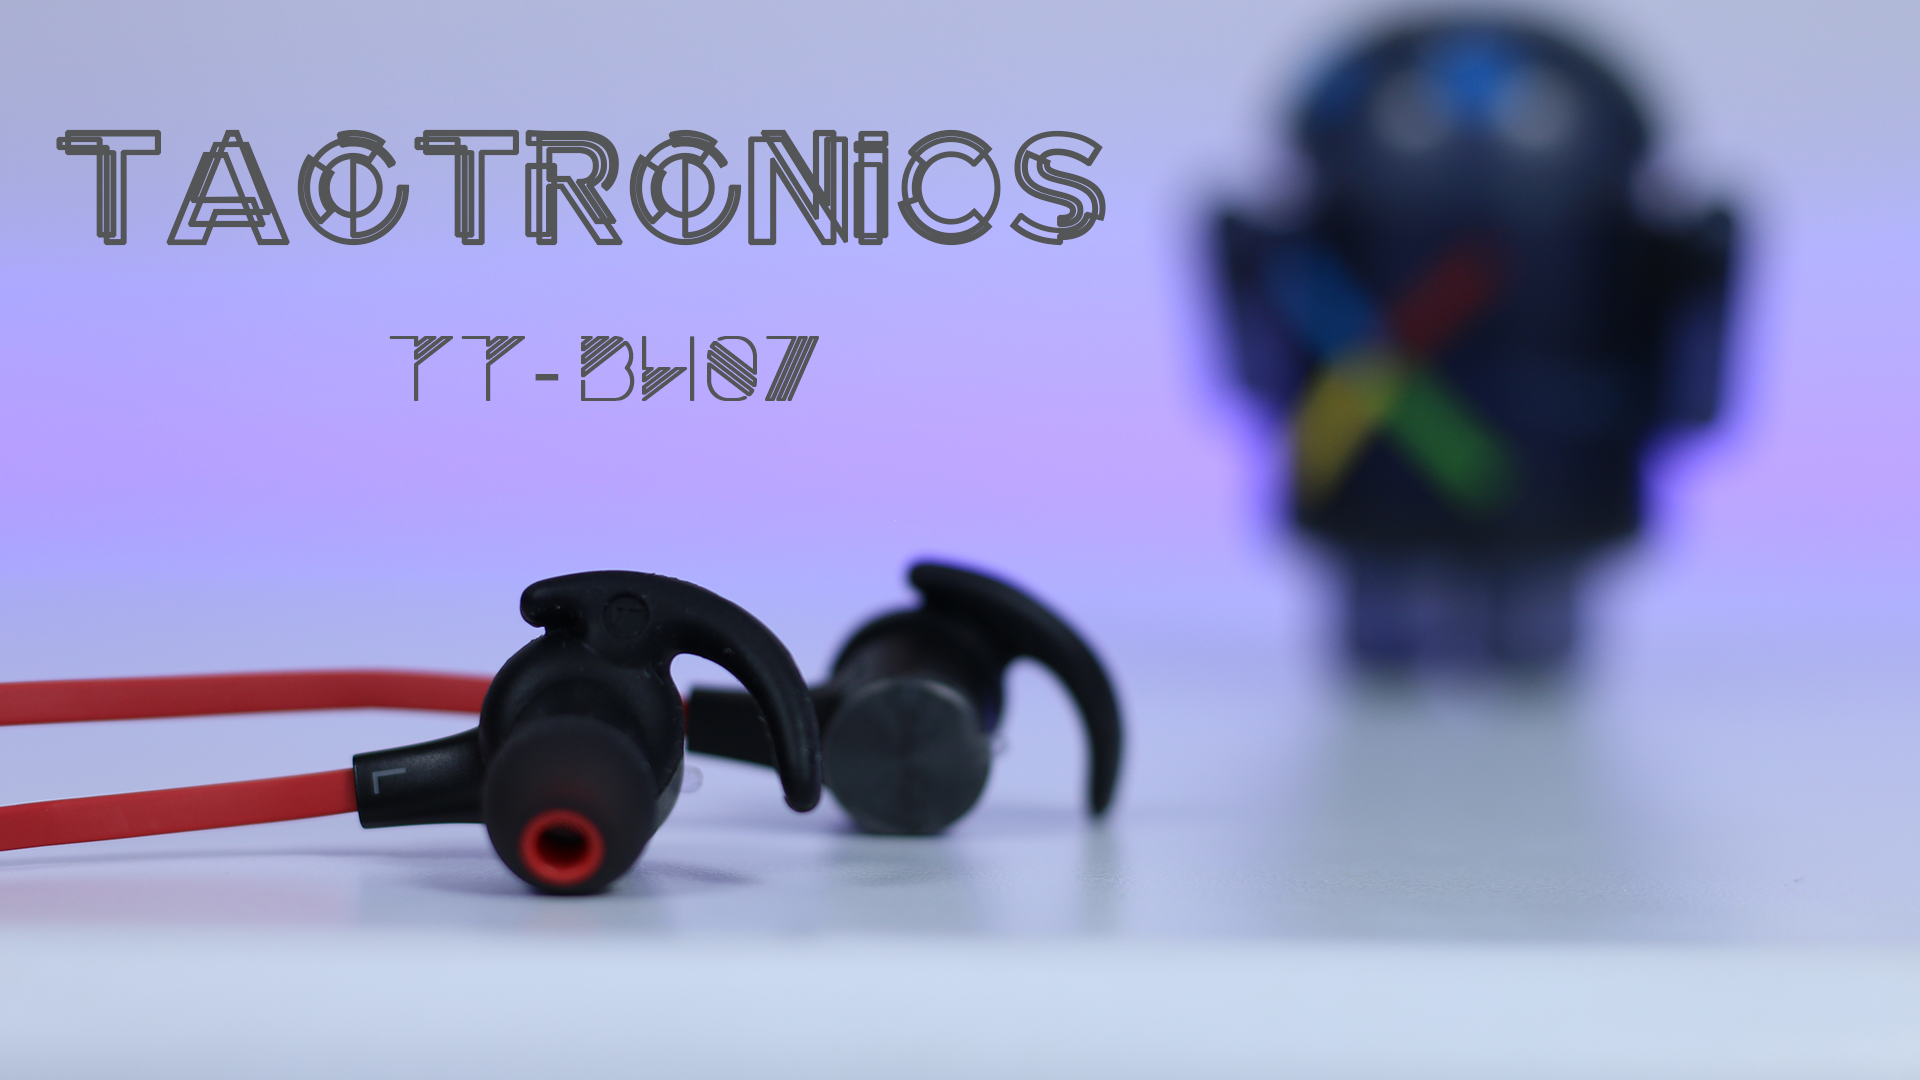 Taotronics Tt Bh07 Magnetic Sport Earphones Better Than Beats Headset Magnet Bluetooth Super Bass Fitness